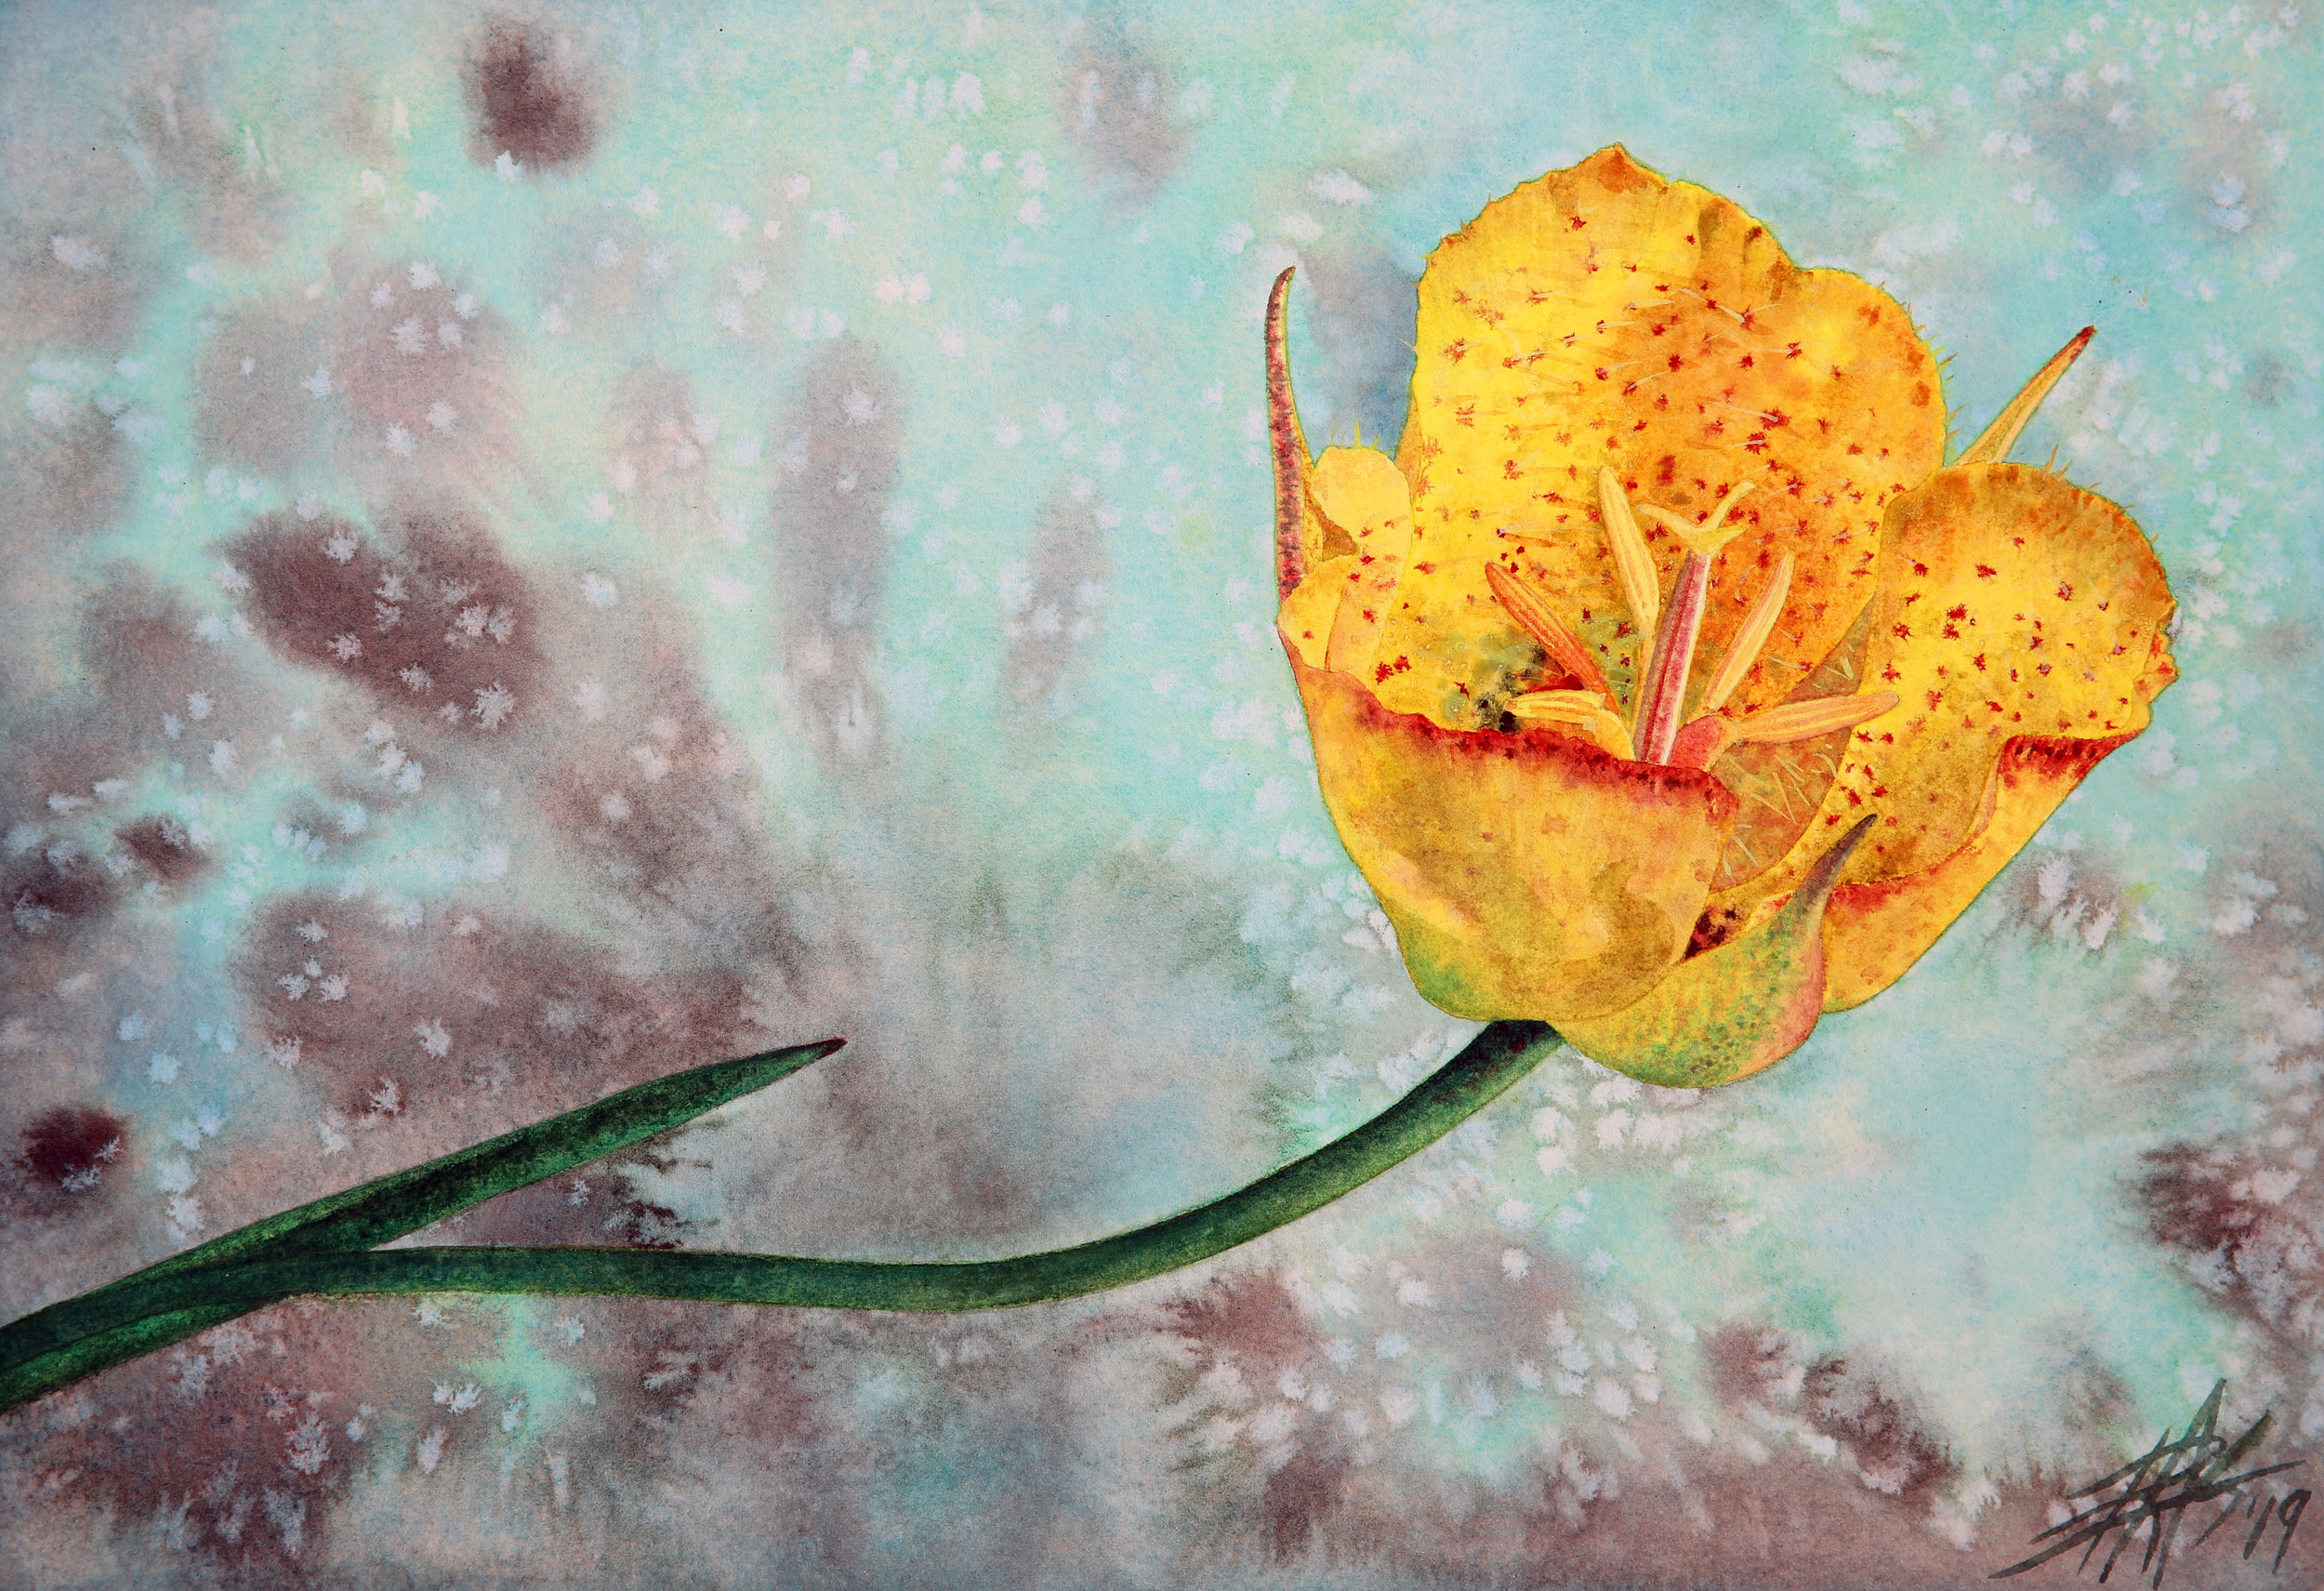 "Weed's Mariposa Lily (Calochortus weedii) . 2019. Transparent watercolor and powdered soft pastel on 300lb hot press paper. 13"" x 19"" (33 x 48cm)."